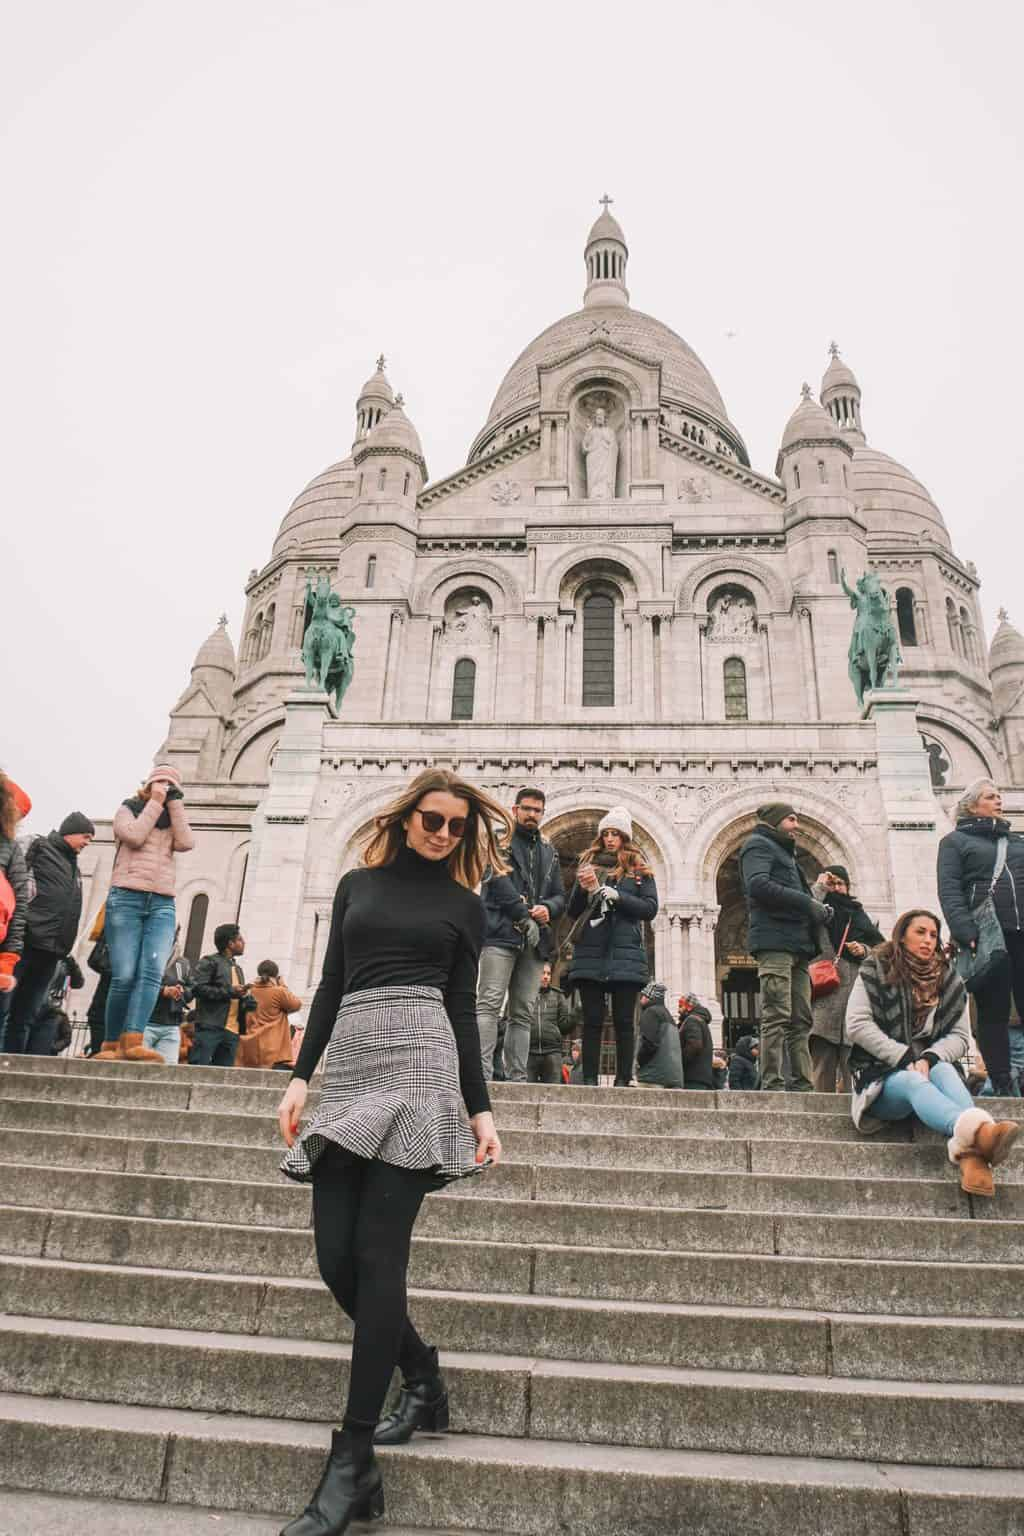 walking down the stairs in front of Sacre Coeur Paris